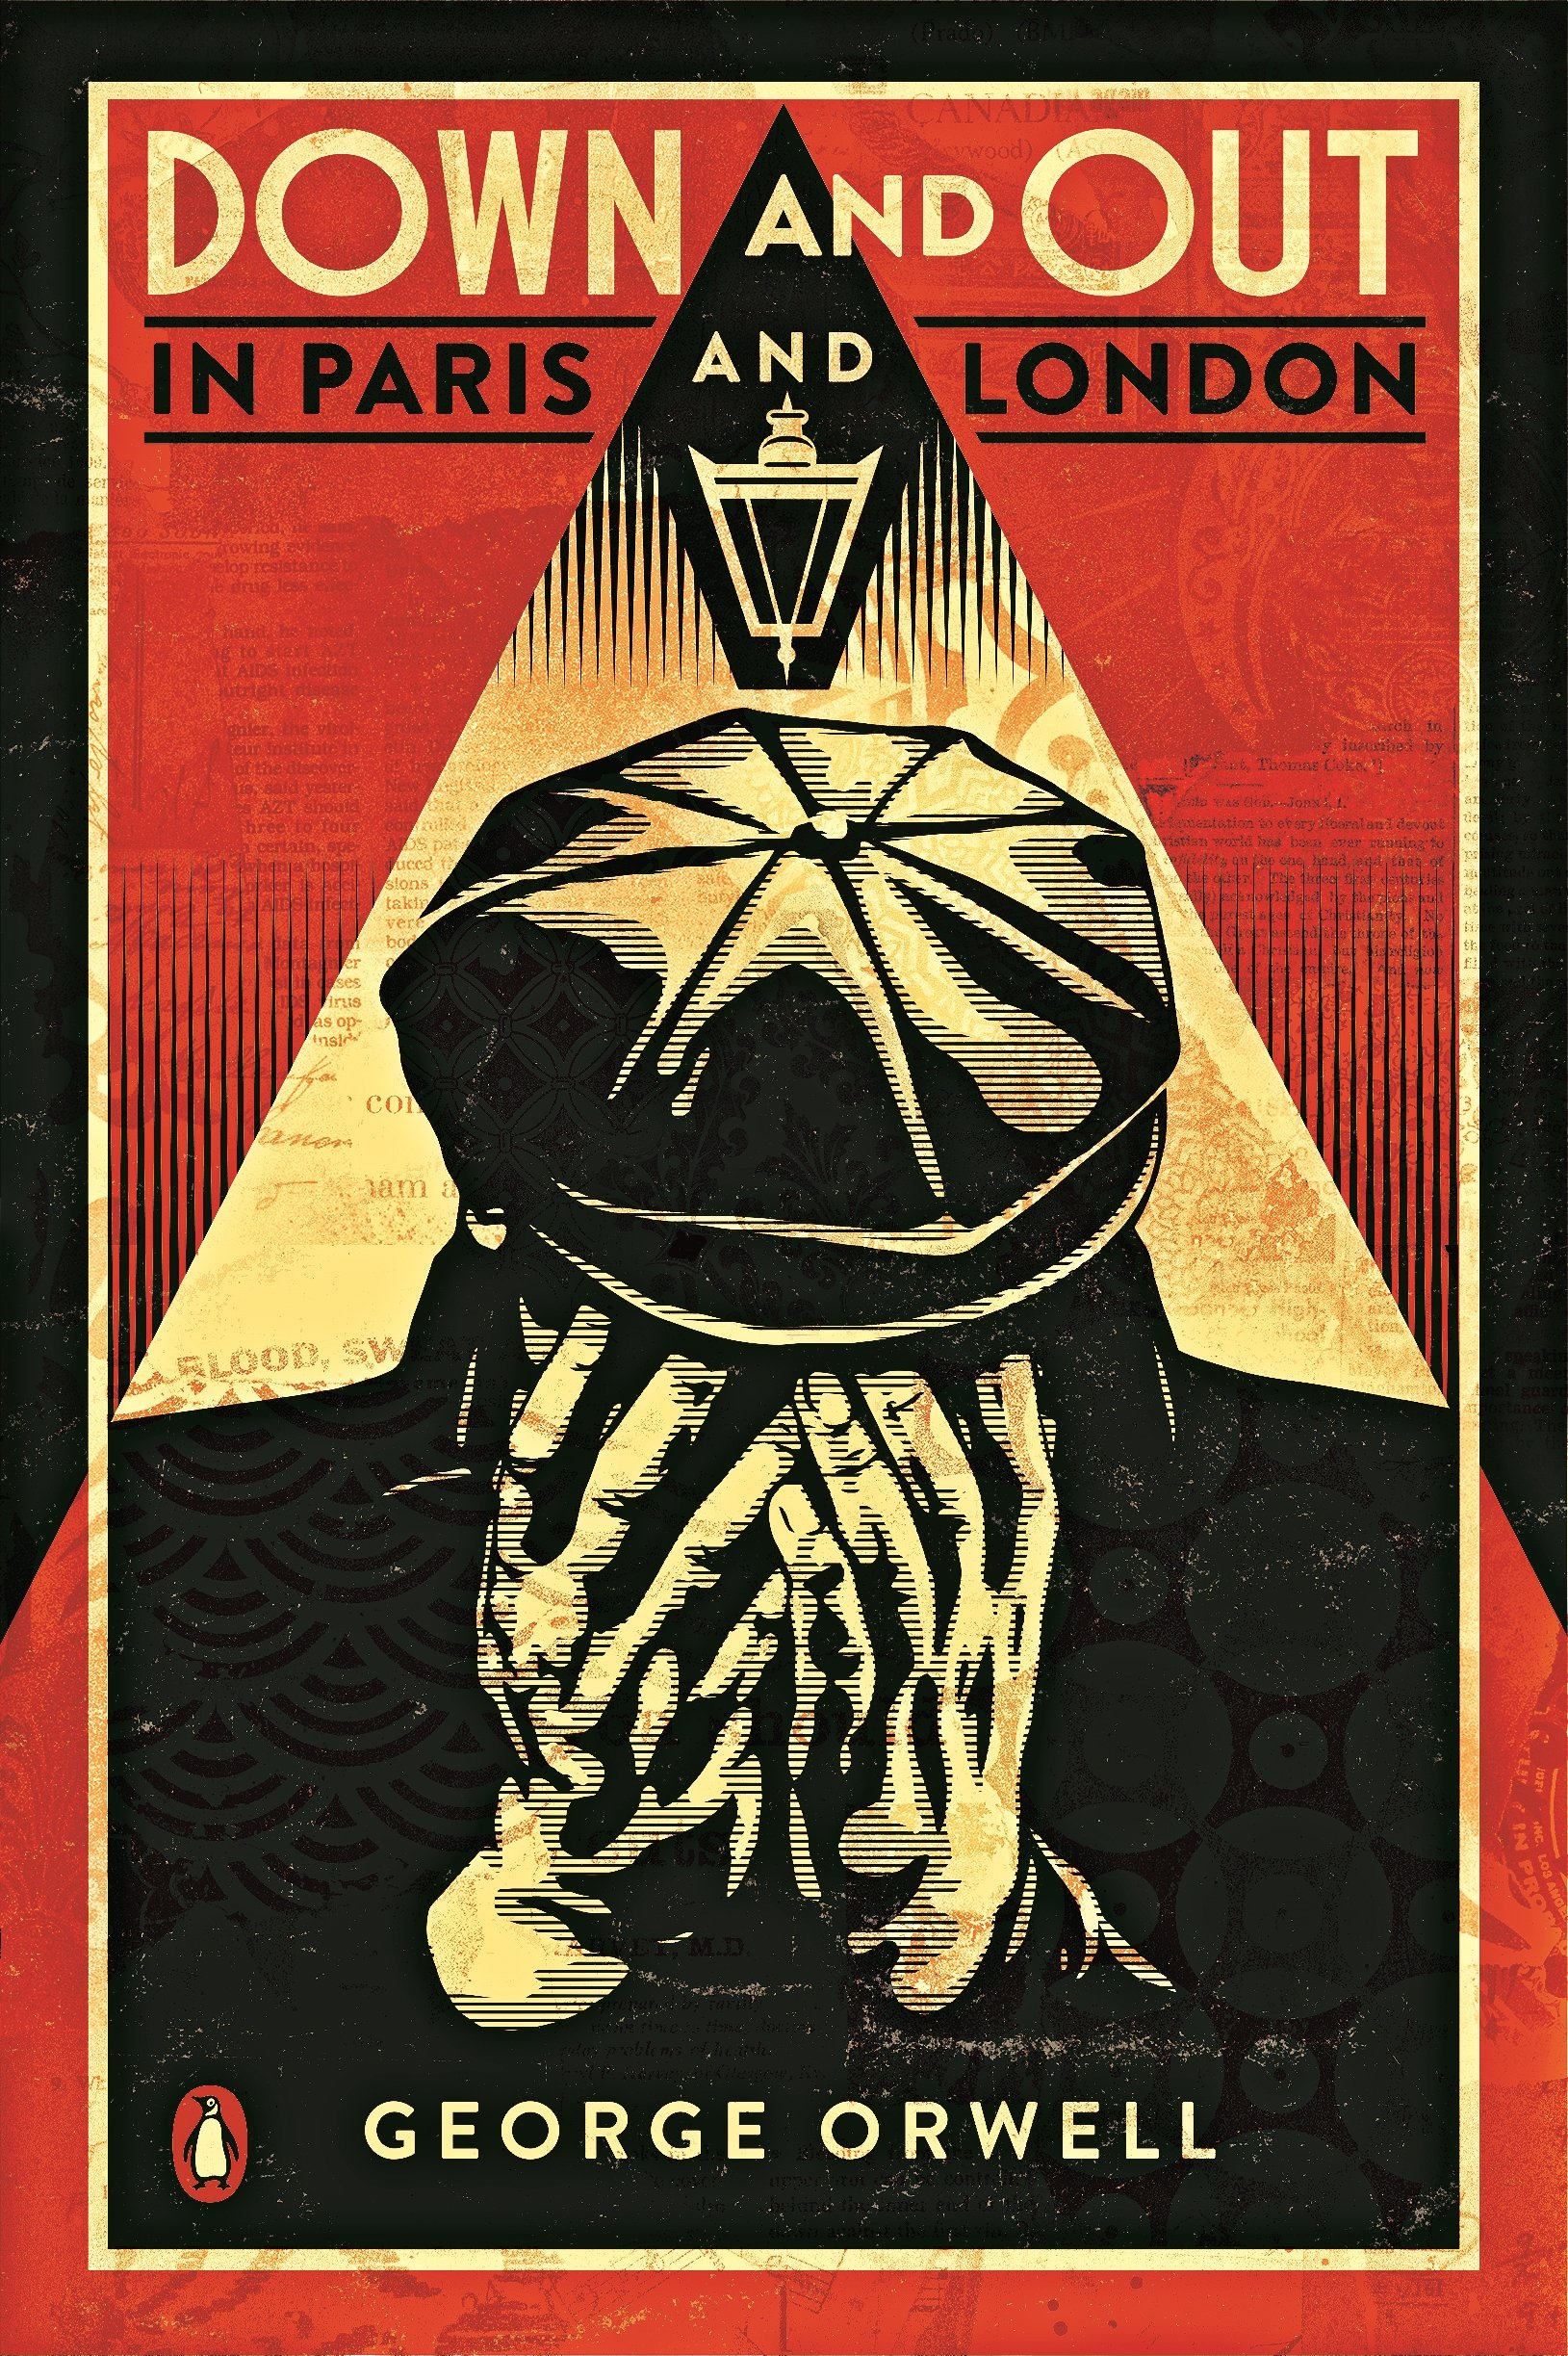 Image result for down and out in paris and london george orwell